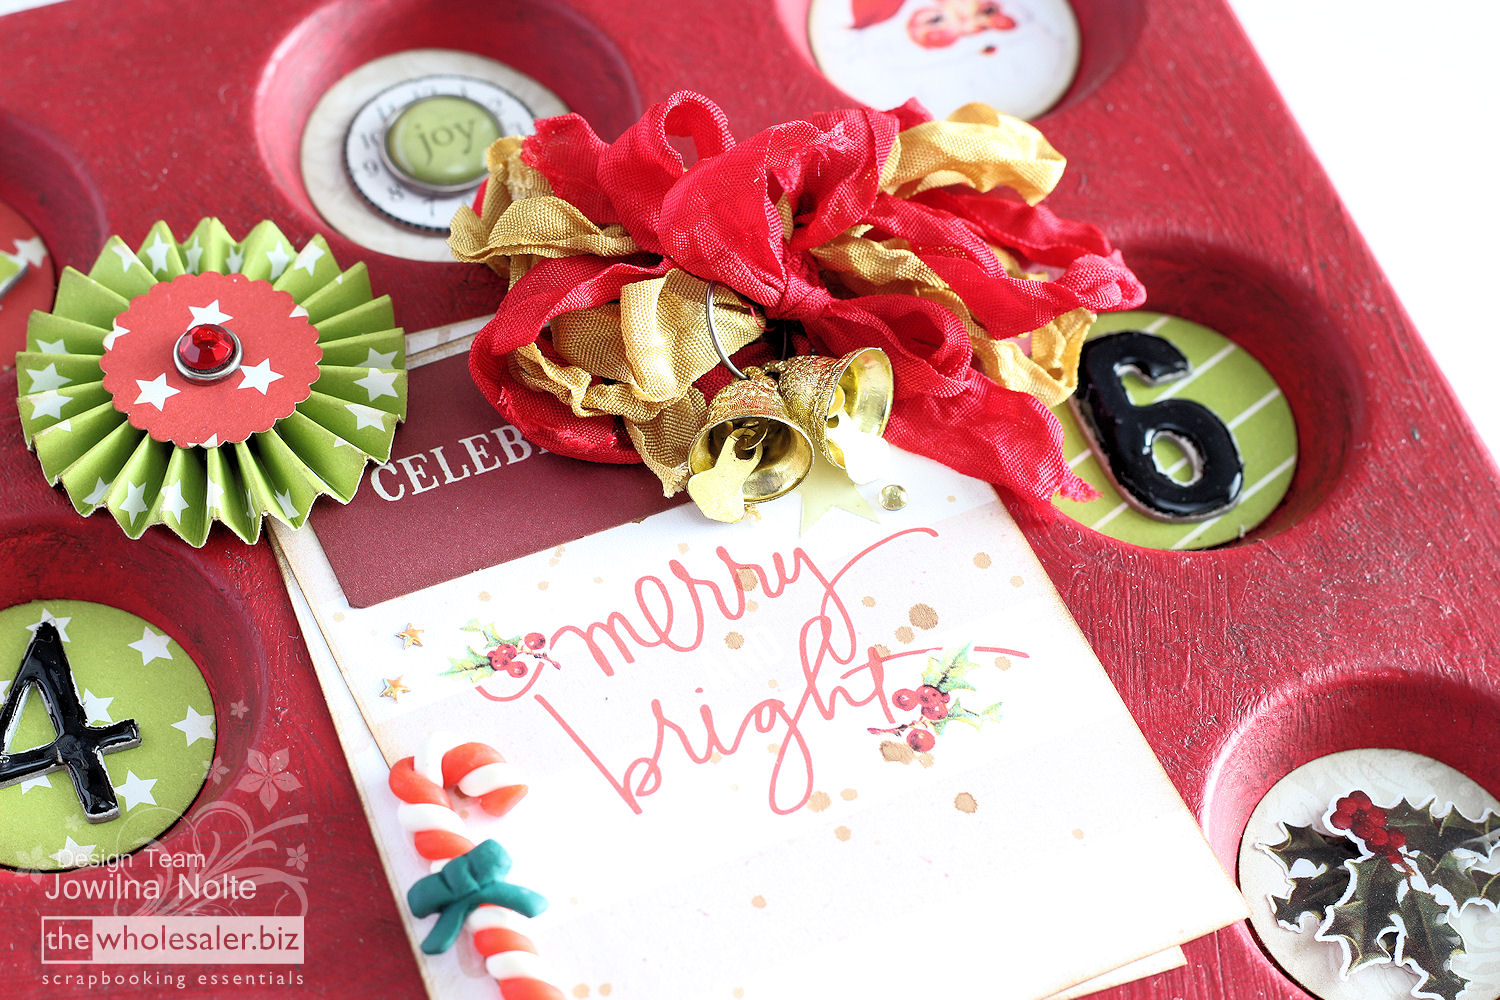 Christmas Preparations With Tape Wormz - Merry & Bright